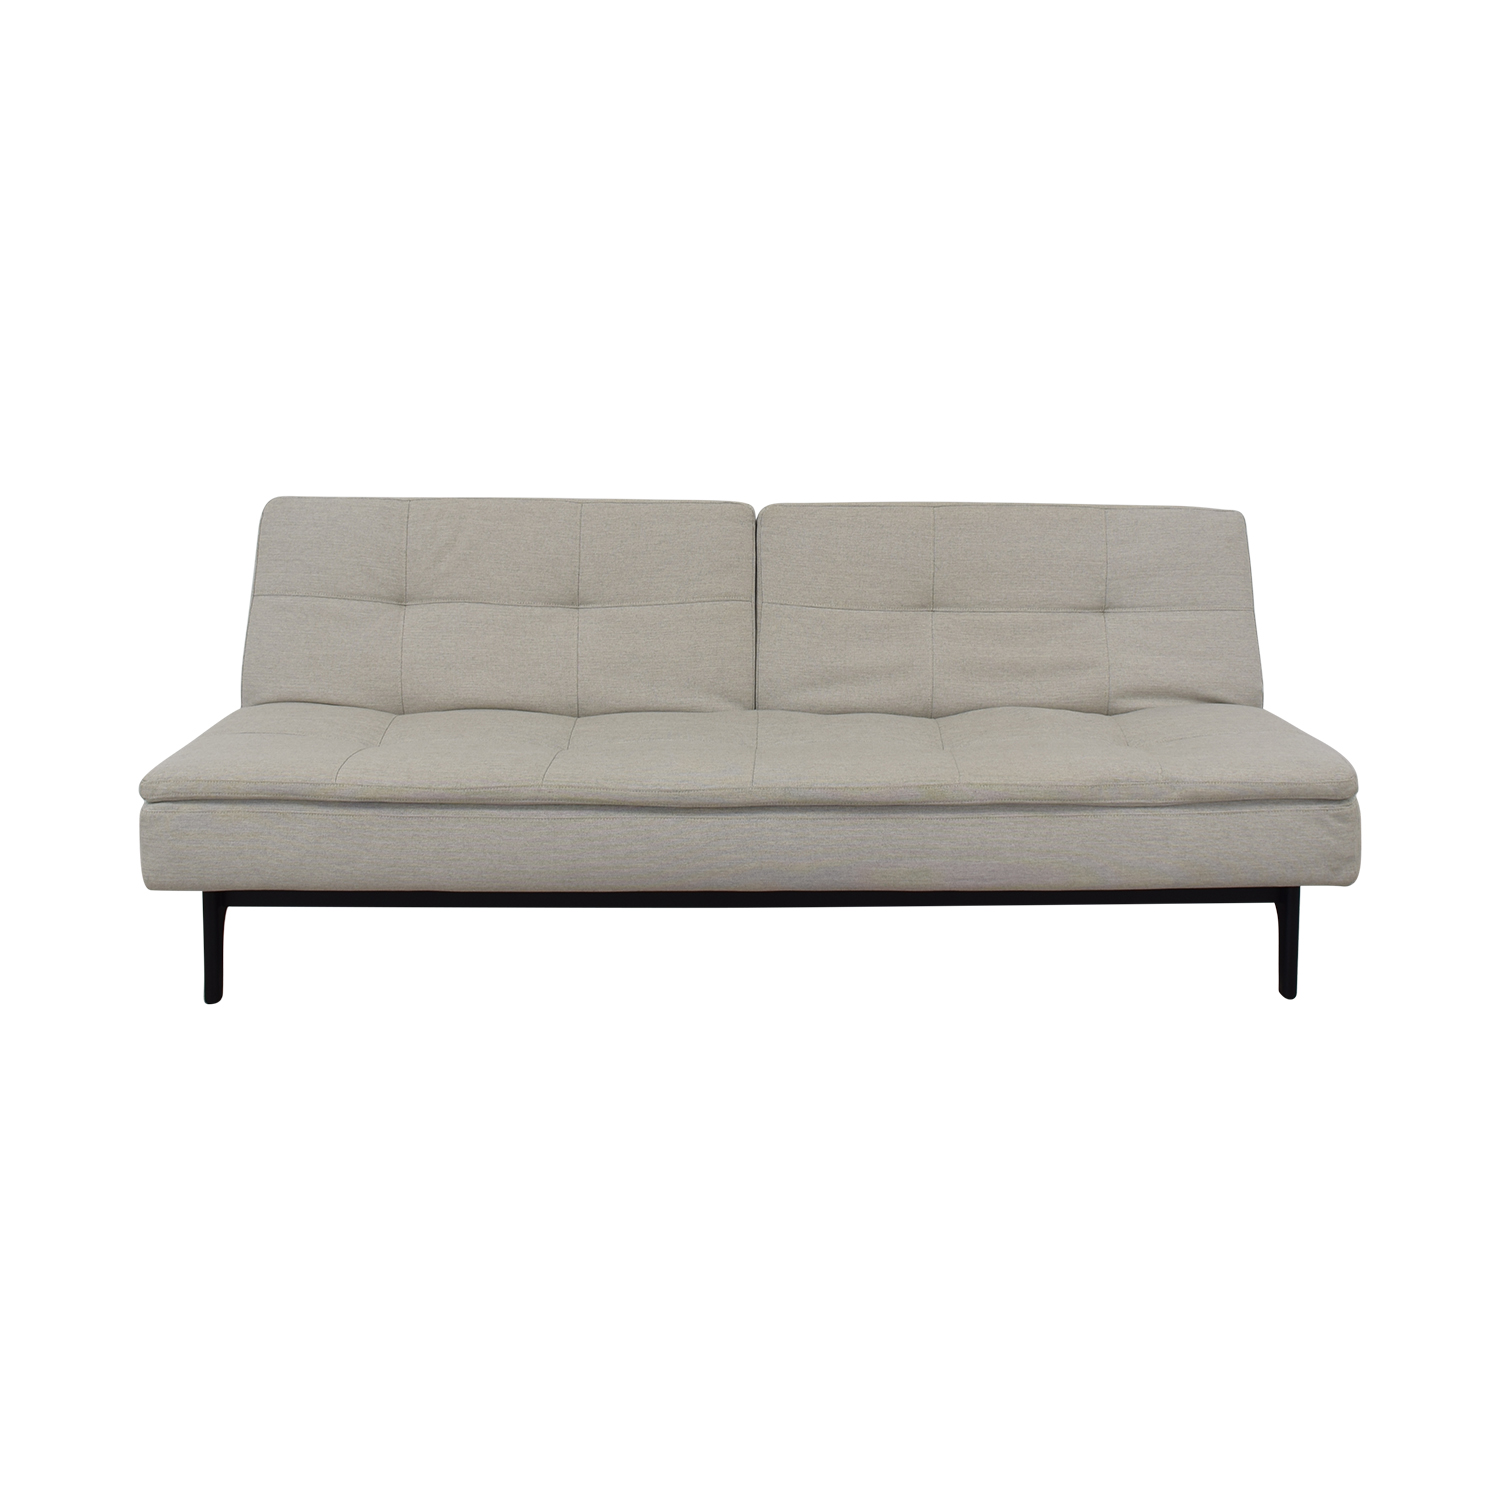 Innovation Living Innovation Living Dublexo Eik Sofa price